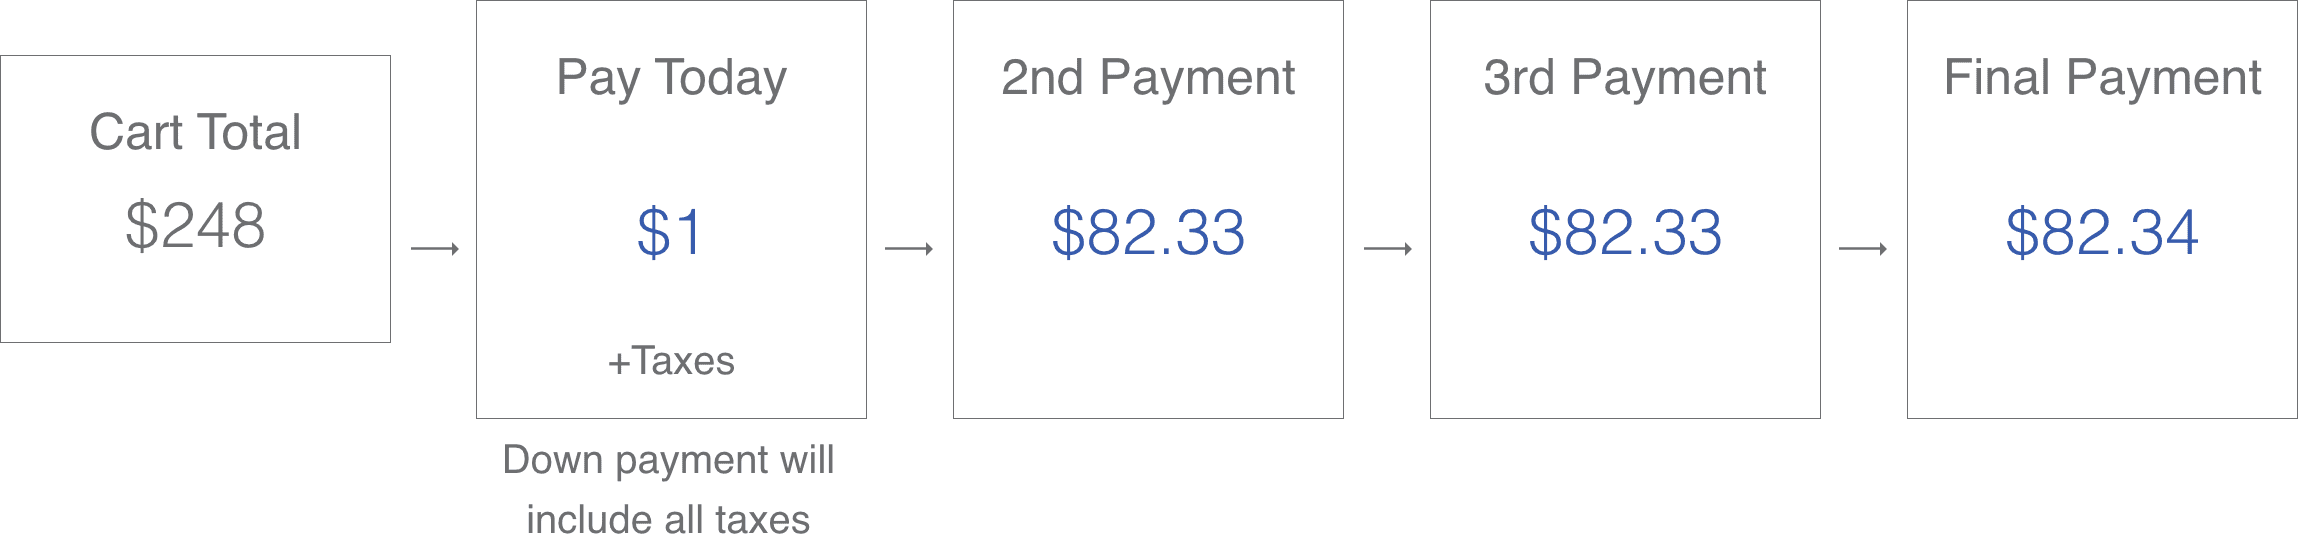 easy pay breakdown: If the cart total is $300, There will be 4 payments of $75+taxes+1/4 of shipping